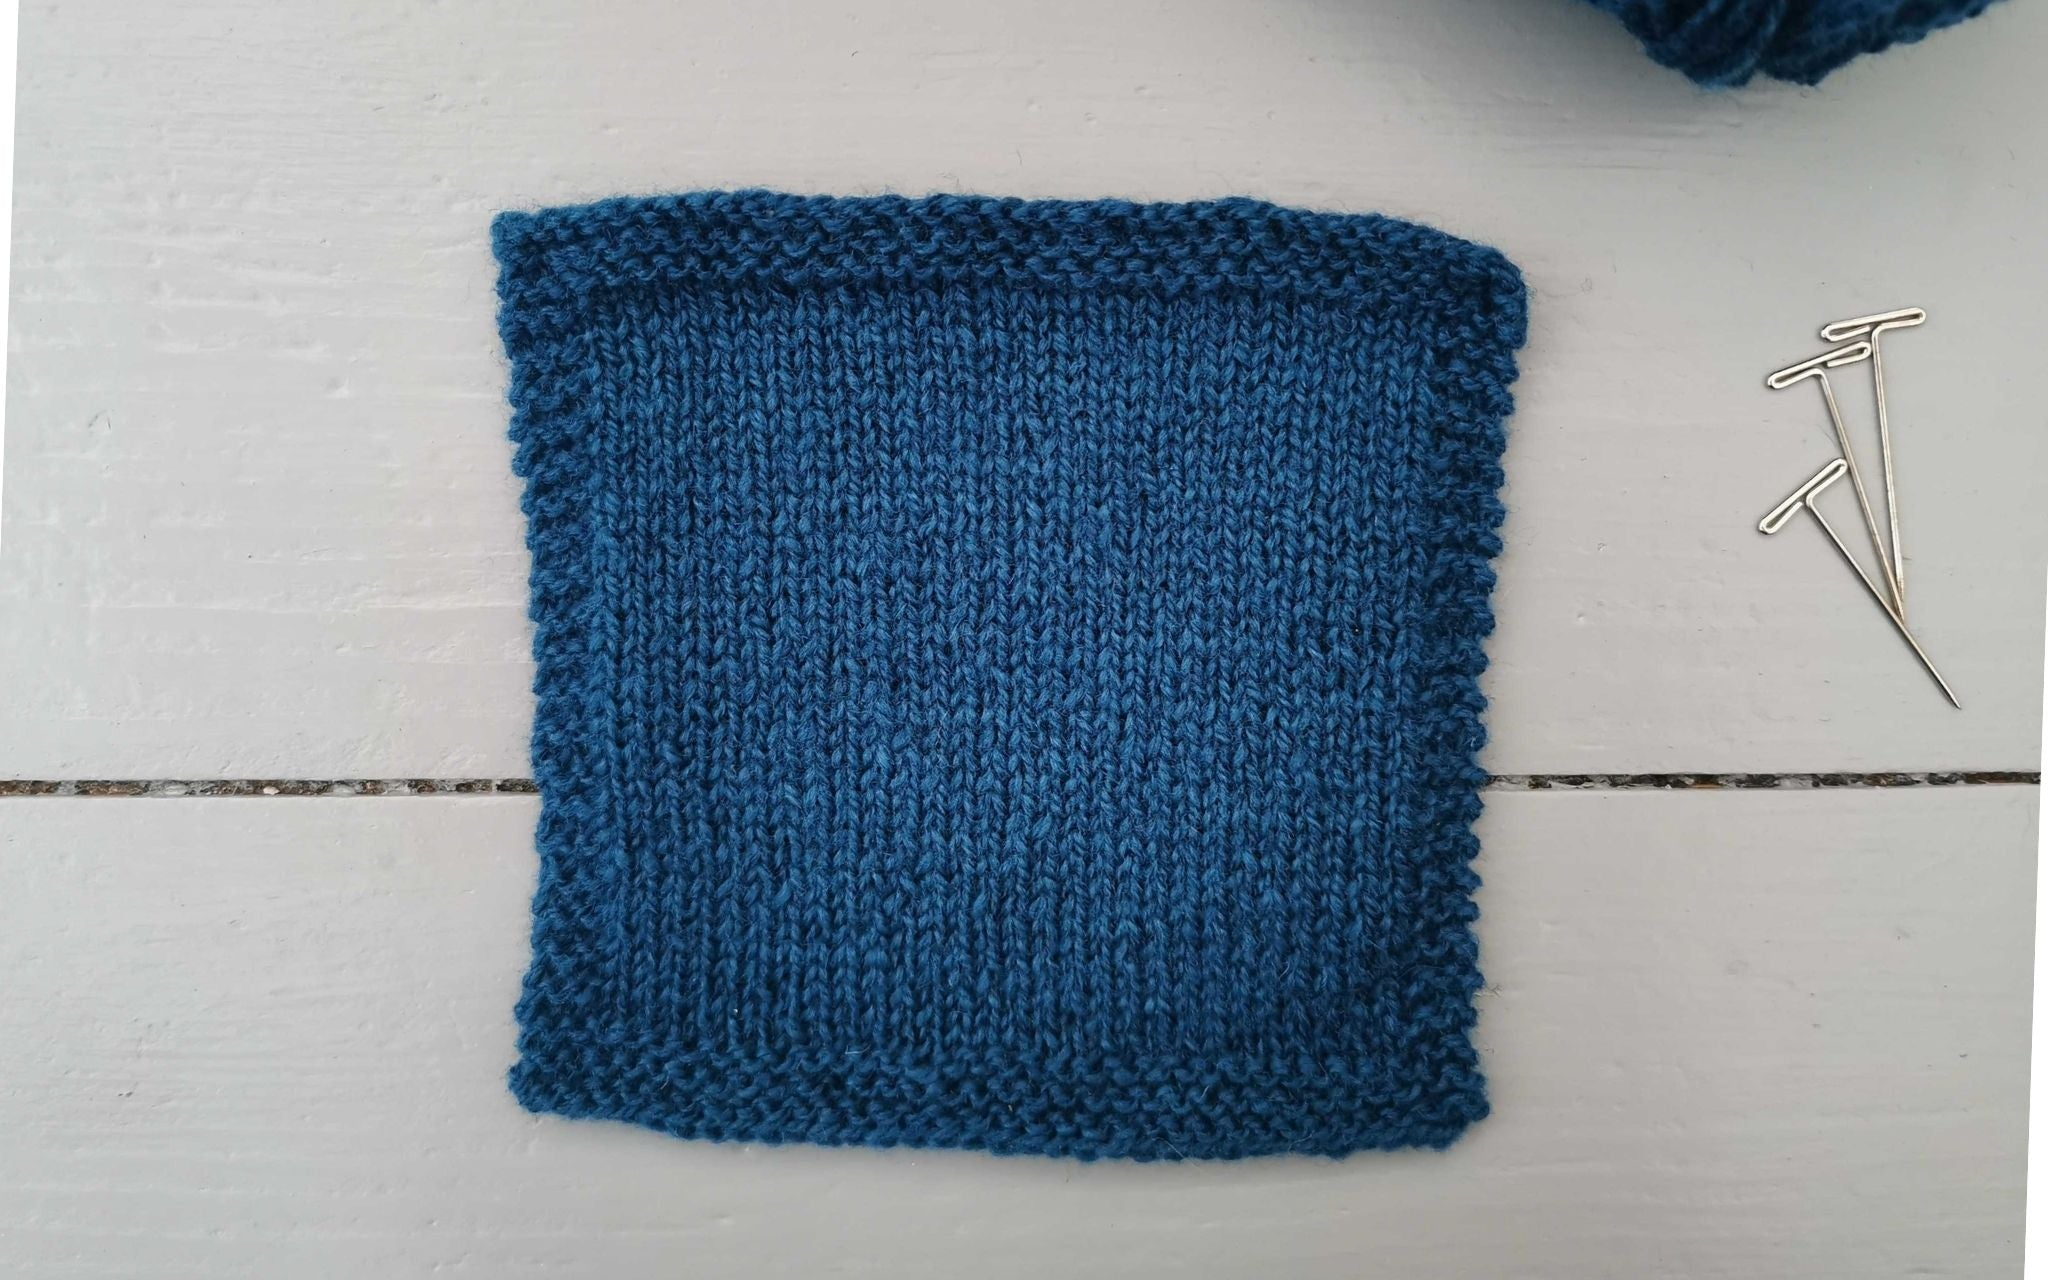 a square navy swatch of knitted fabric, with a tiny glimpse at the ball of yarn used in the corner and three t-pins at the side